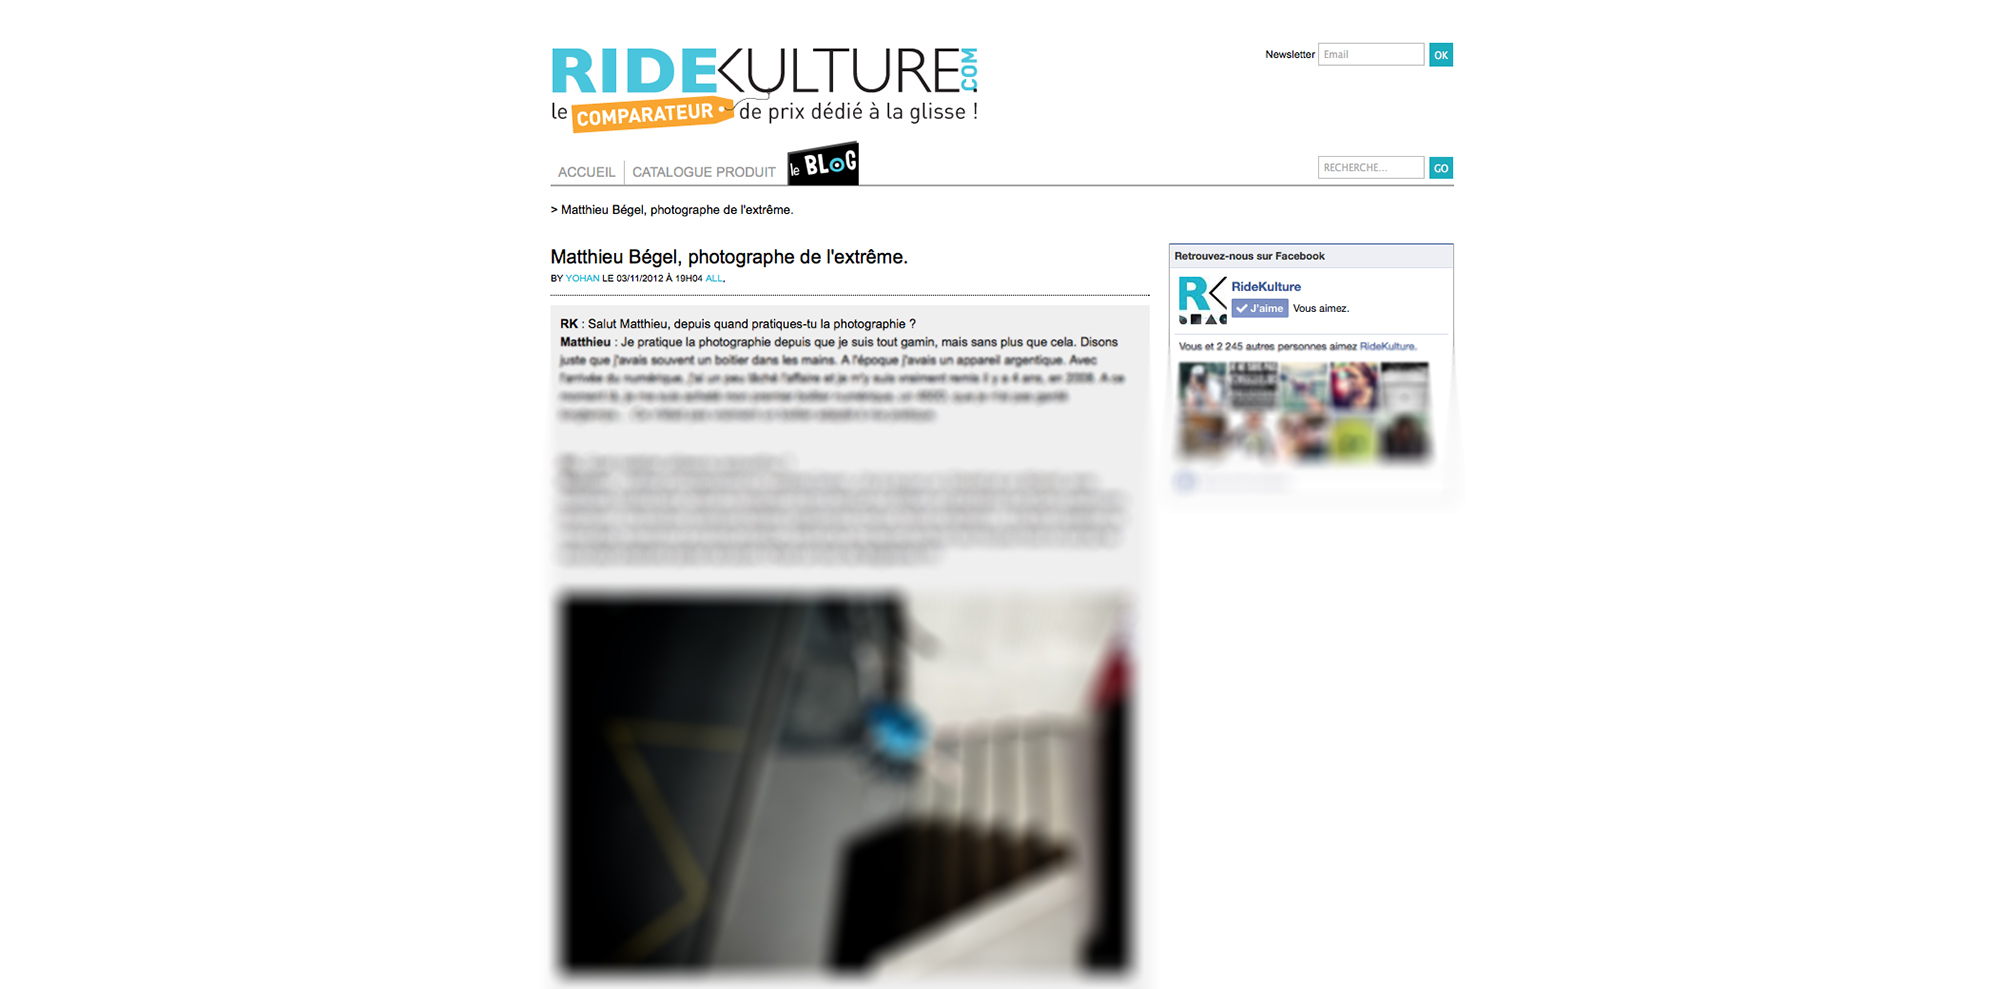 ITW – Ride Kulture